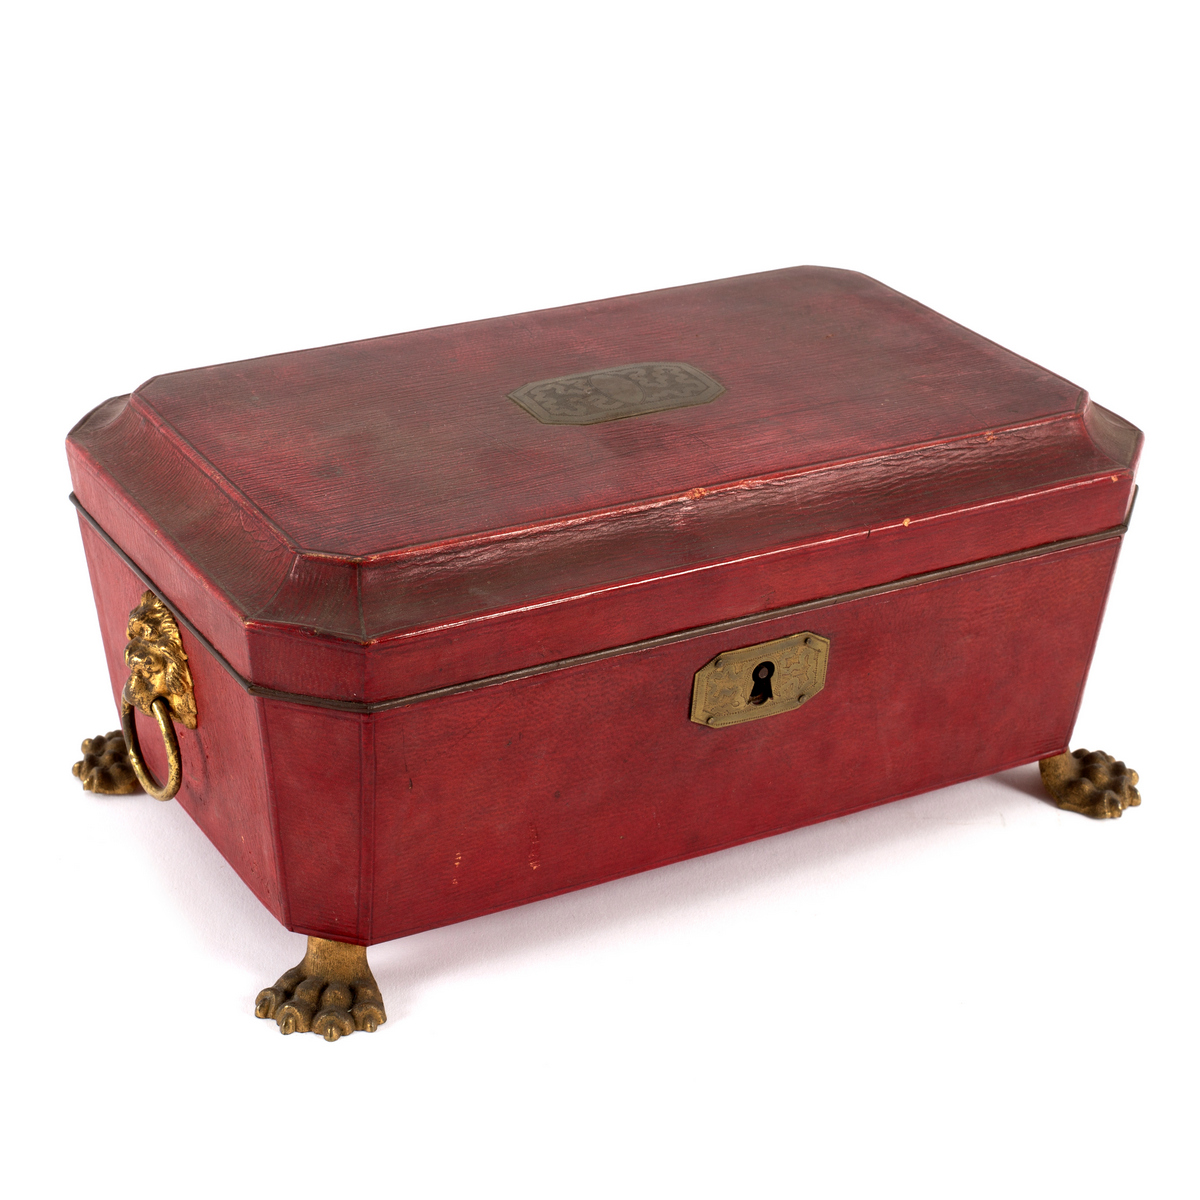 Lot 574 - A Regency leather covered sewing box with brass lion mask ring handles and paw feet,